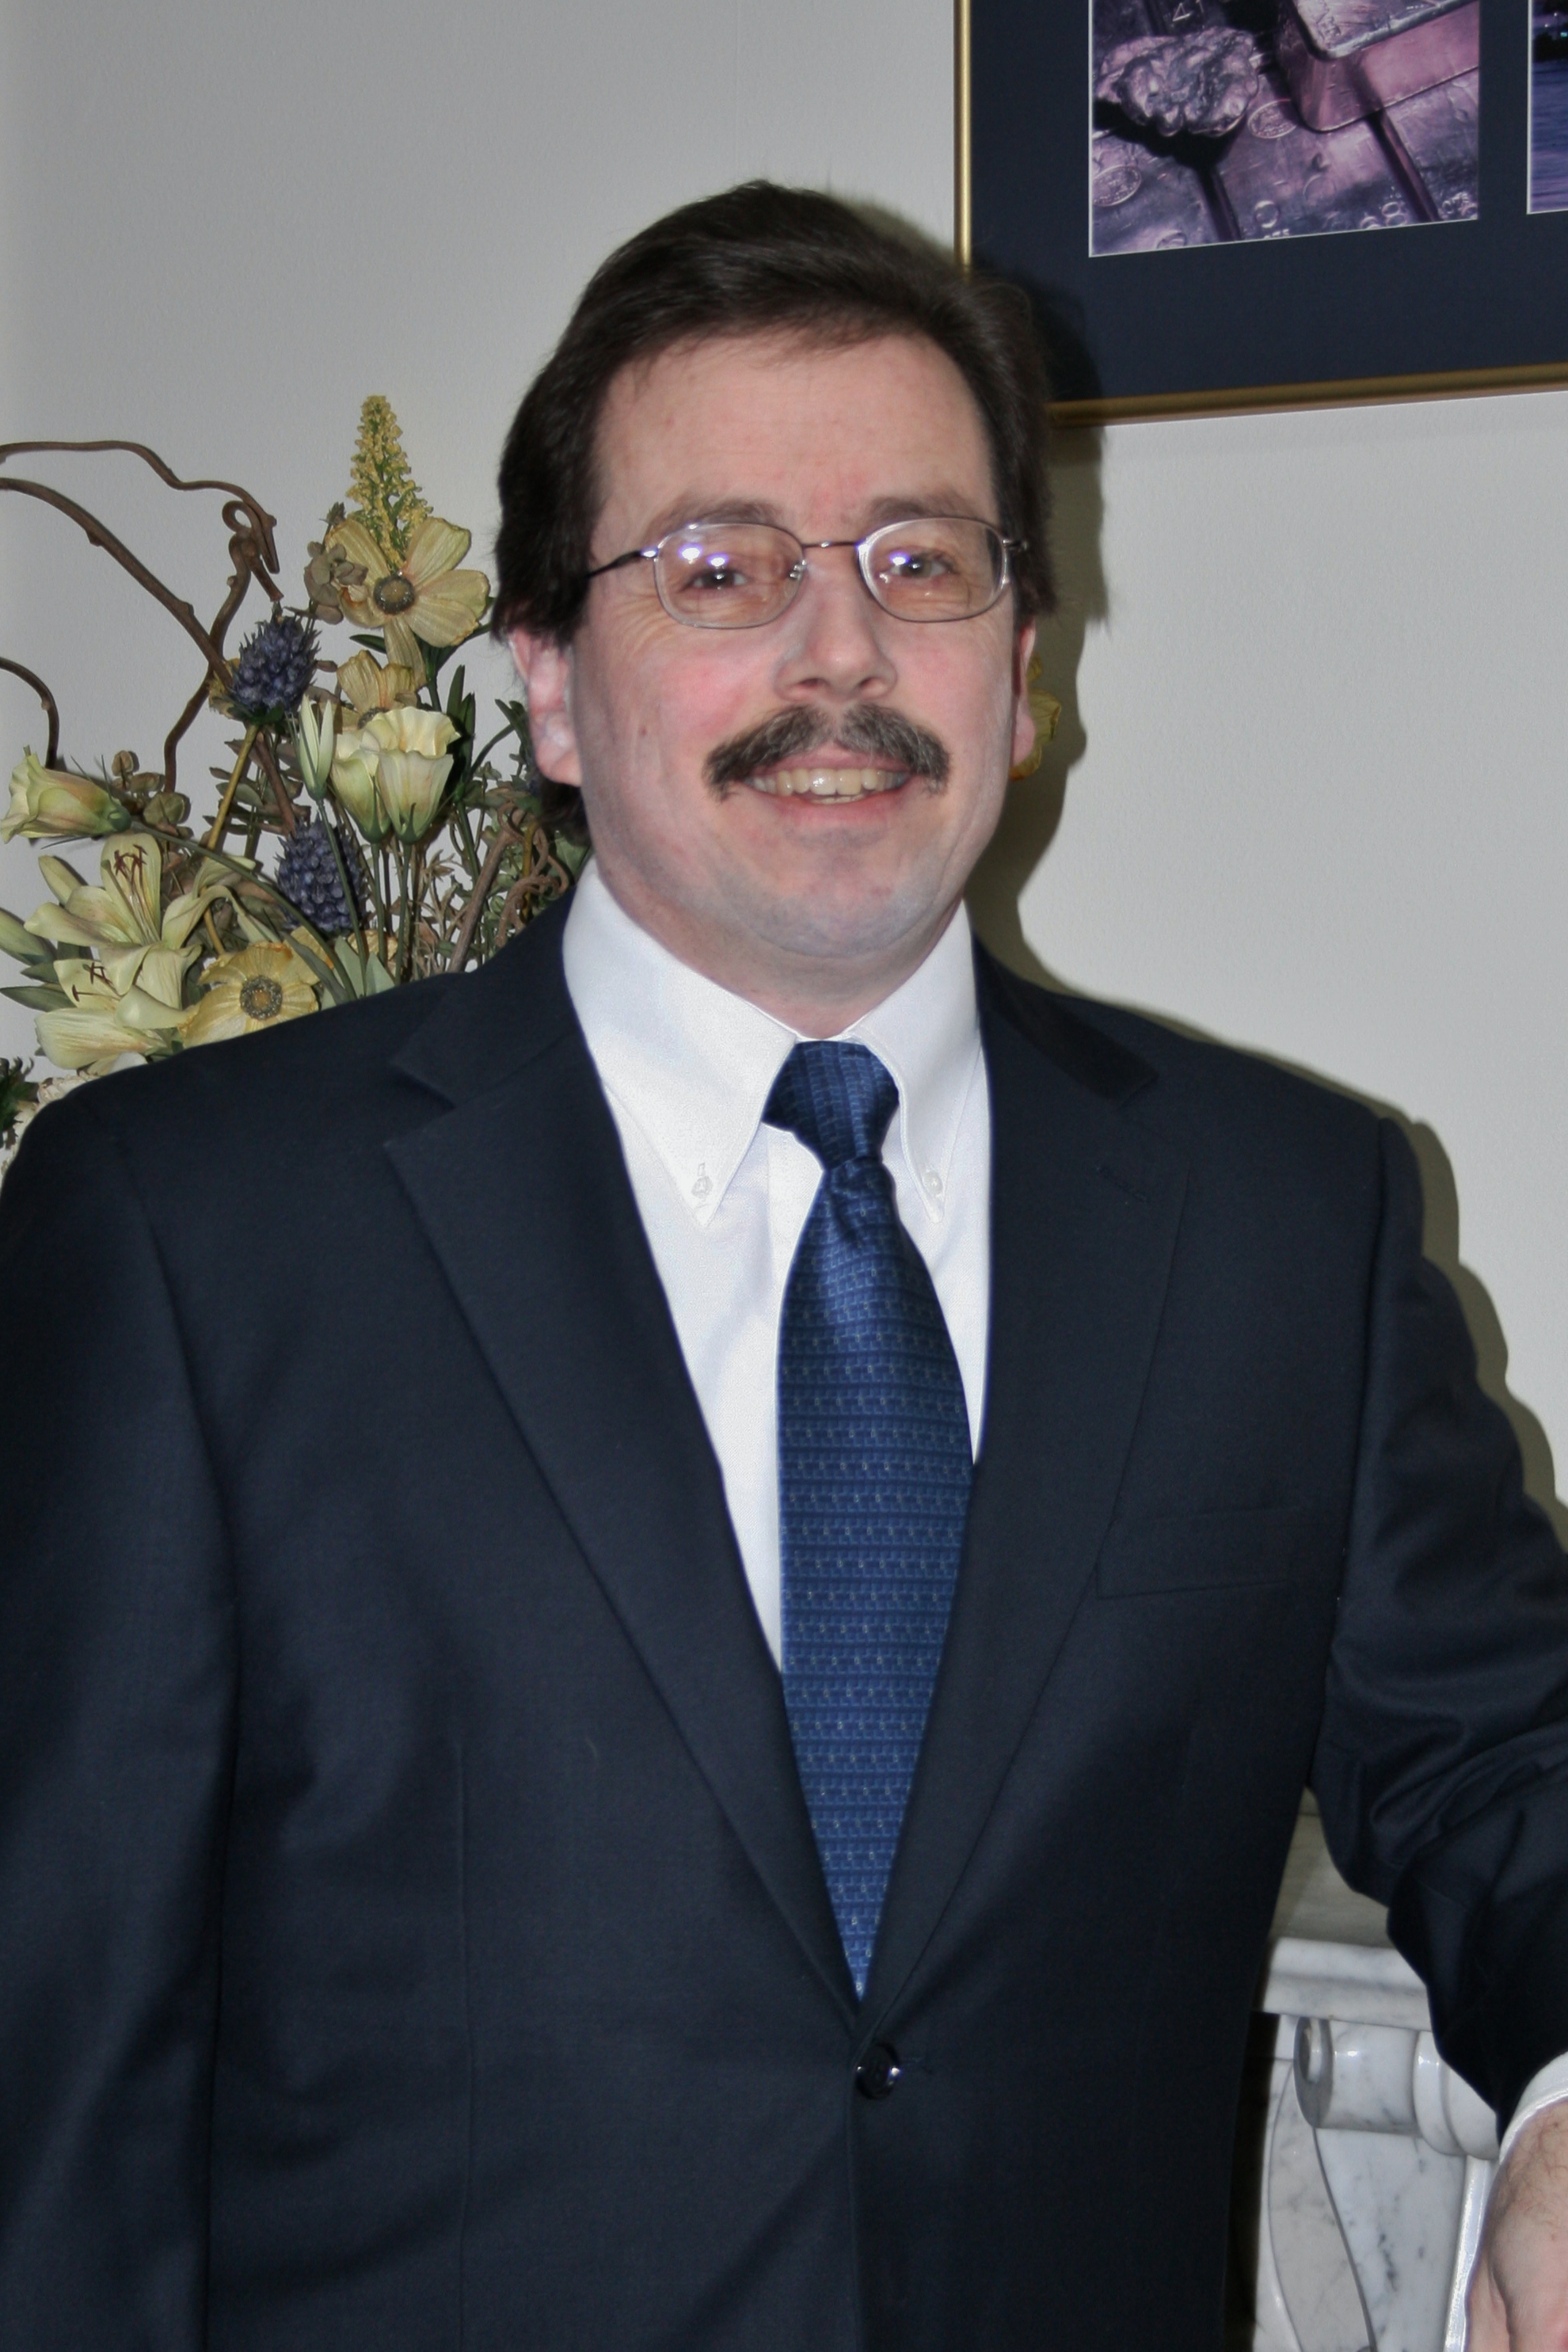 Glenn Sweeney, financial advisor Peterborough NH